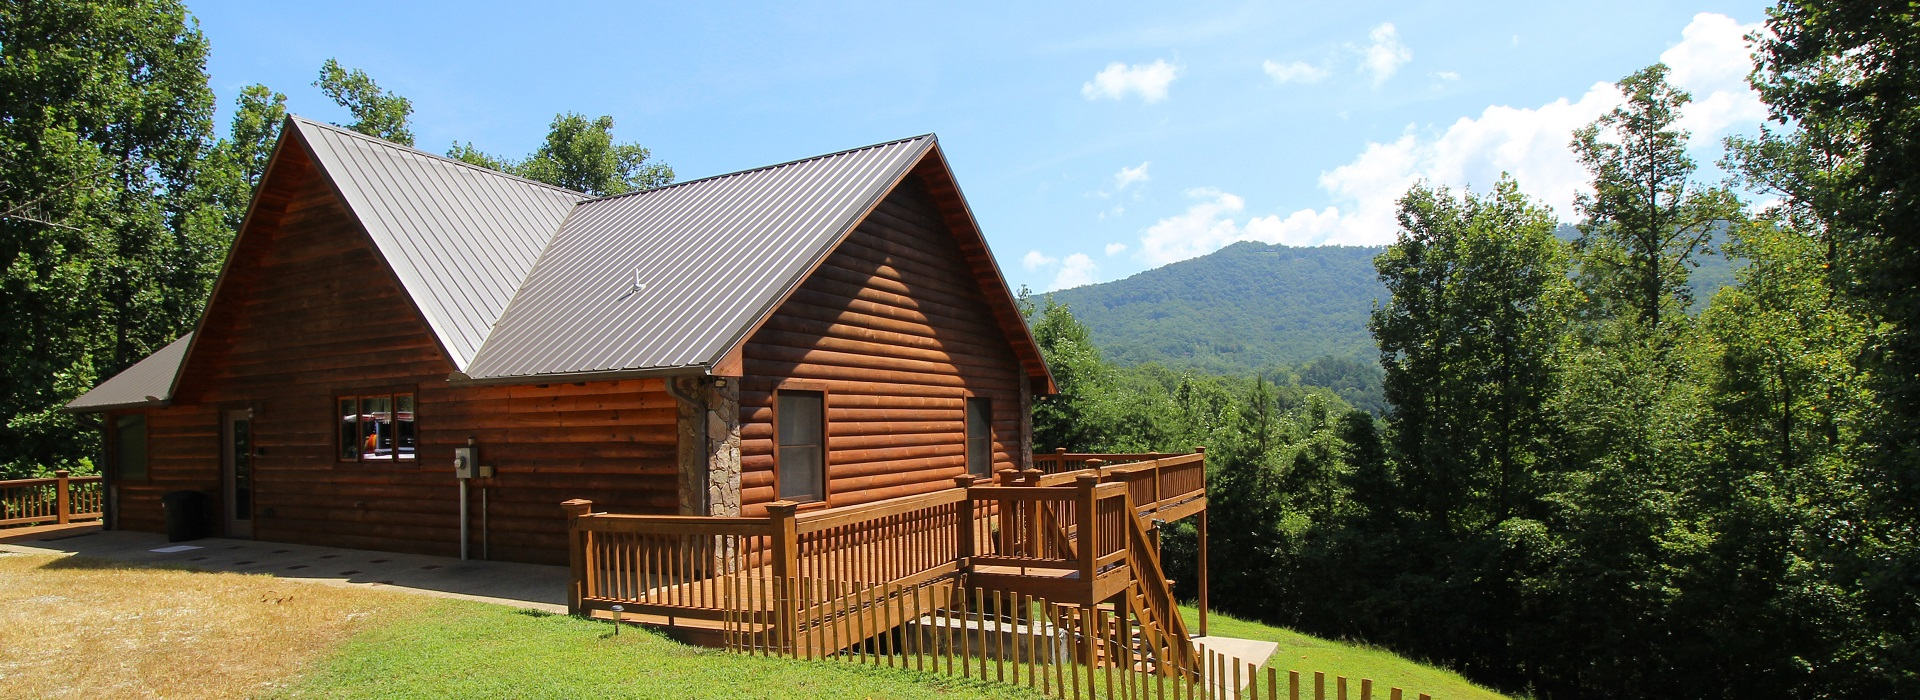 cheap for amazing amenities of charming pet in best solutions under cabins tn mountain incredible the bedroom rentals friendly gatlinburg ideas smoky fabulous cabin